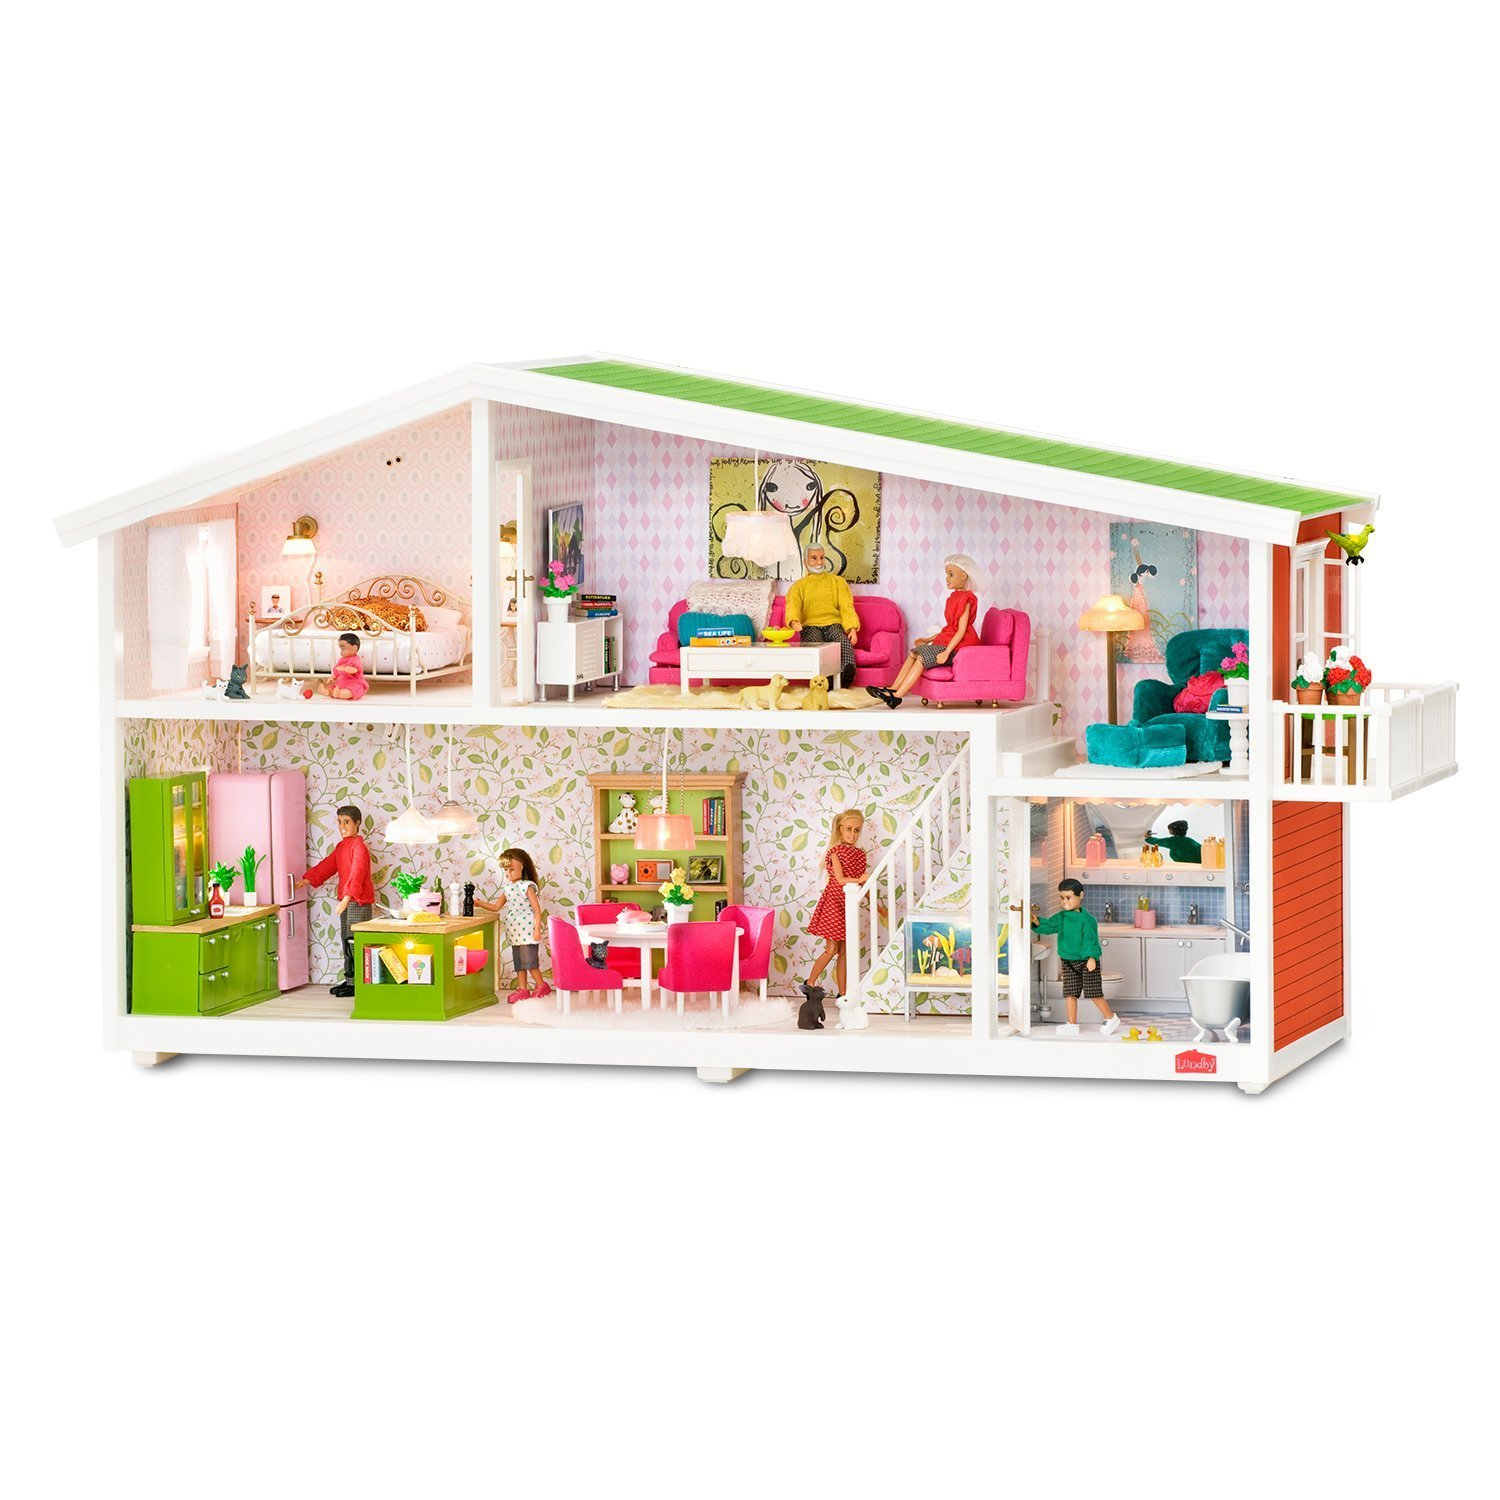 Lundby Smaland Dolls House | The Dolls House Boutique on jämtland, södermanland,